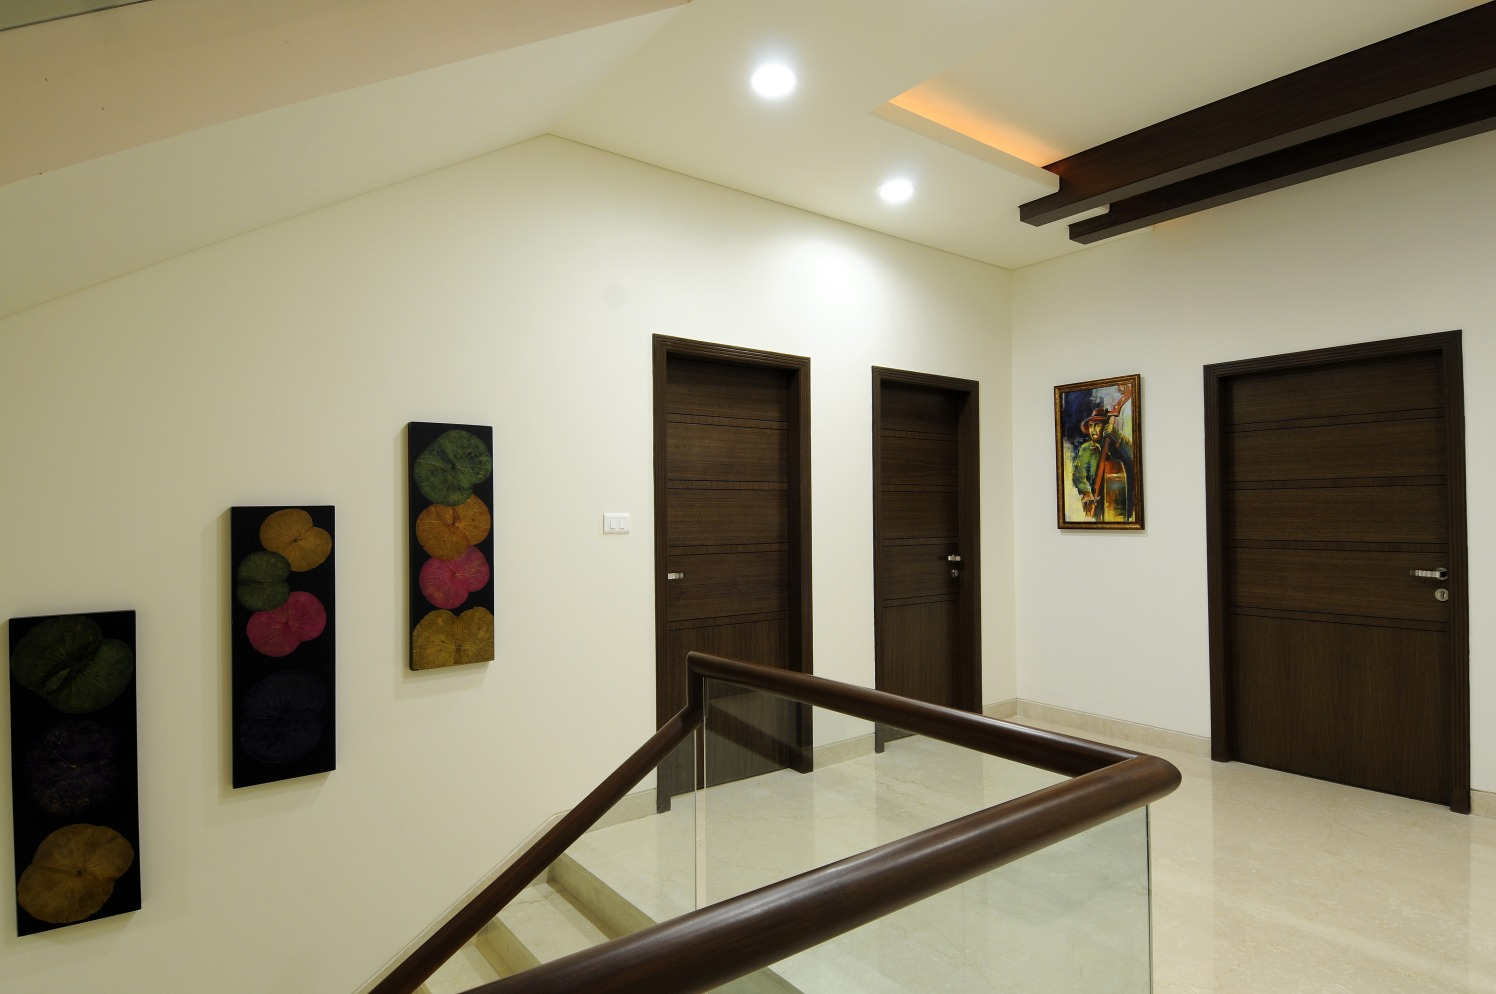 Staircase With Marble Flooring by Nandigam Harish Indoor-spaces Modern | Interior Design Photos & Ideas